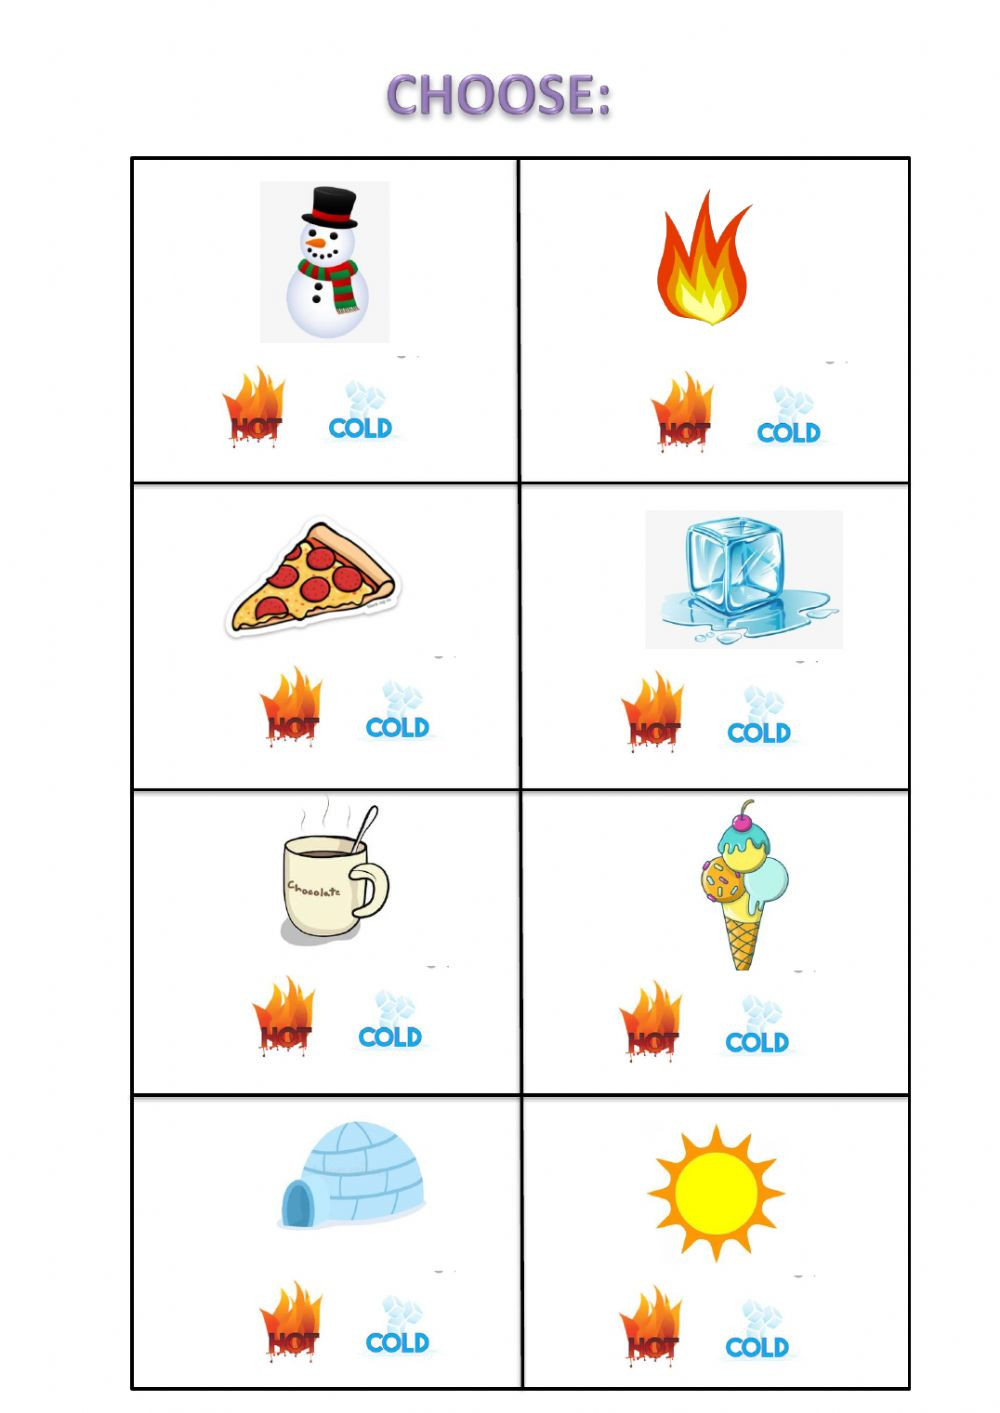 Preschool Opposites Worksheets Hot Cold Interactive Worksheet